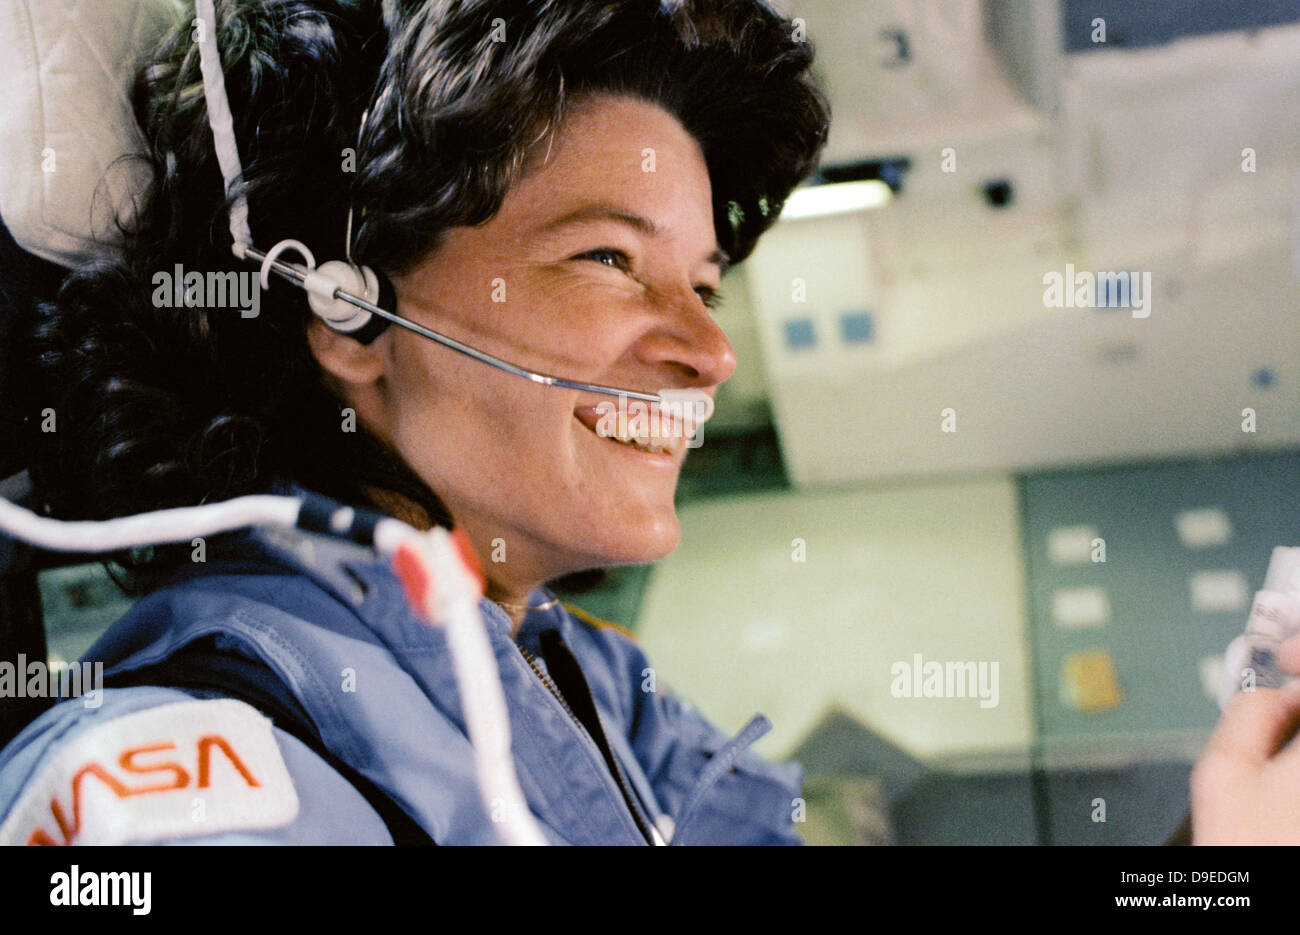 NASA astronaut Sally Ride during her flight as the first American woman in space aboard the Shuttle Challenger June - Stock Image